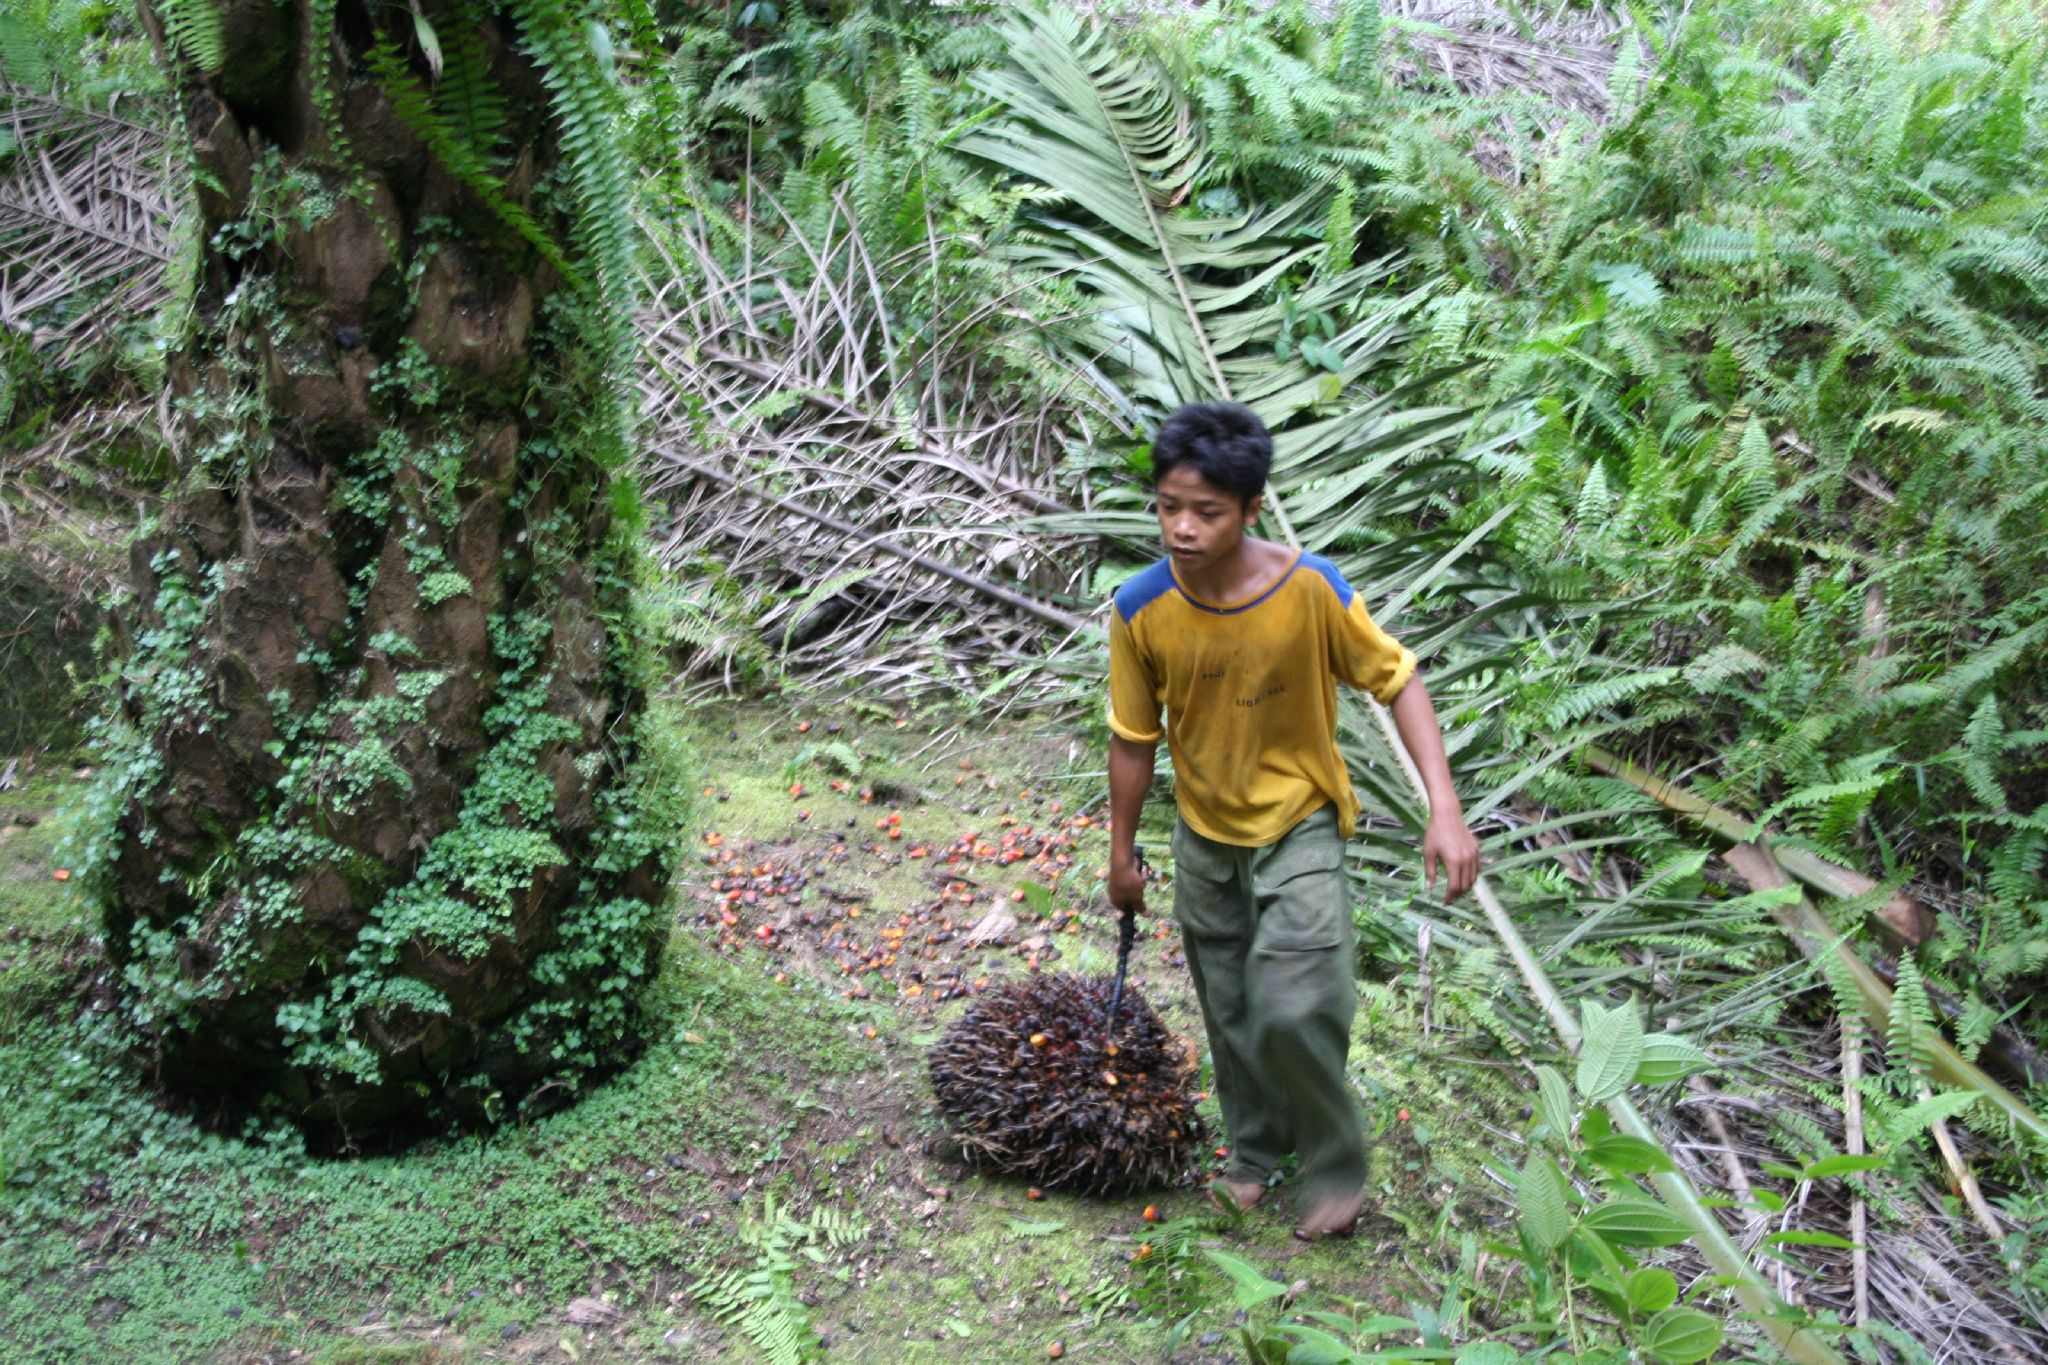 West Kalimantan boy in forest